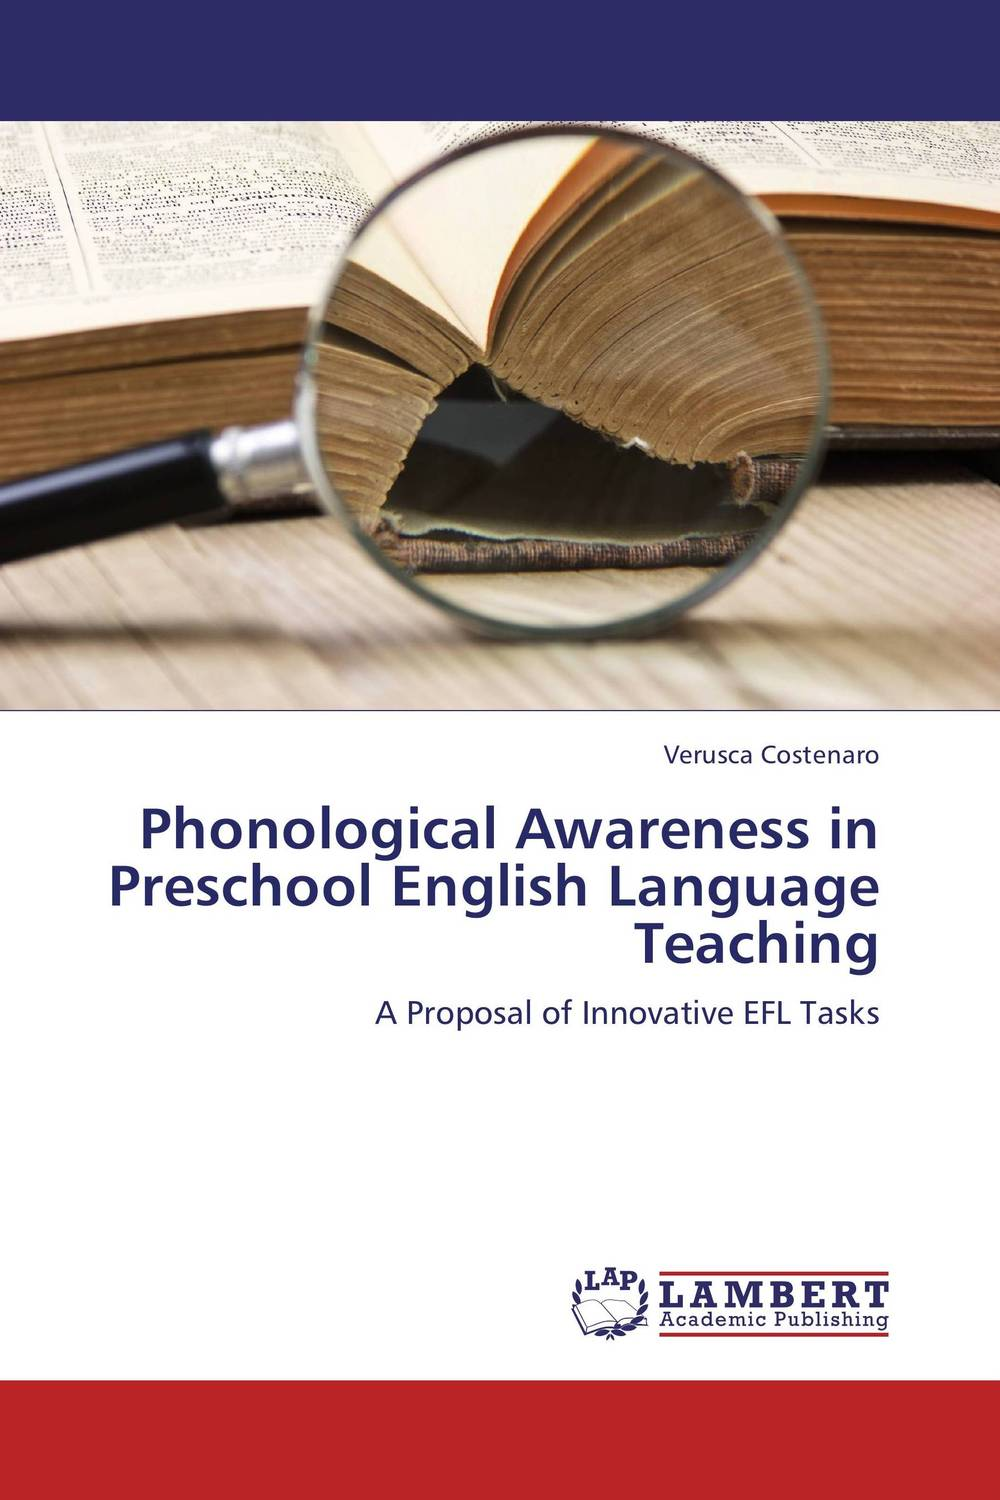 Phonological Awareness in Preschool English Language Teaching melissa farrall lee reading assessment linking language literacy and cognition